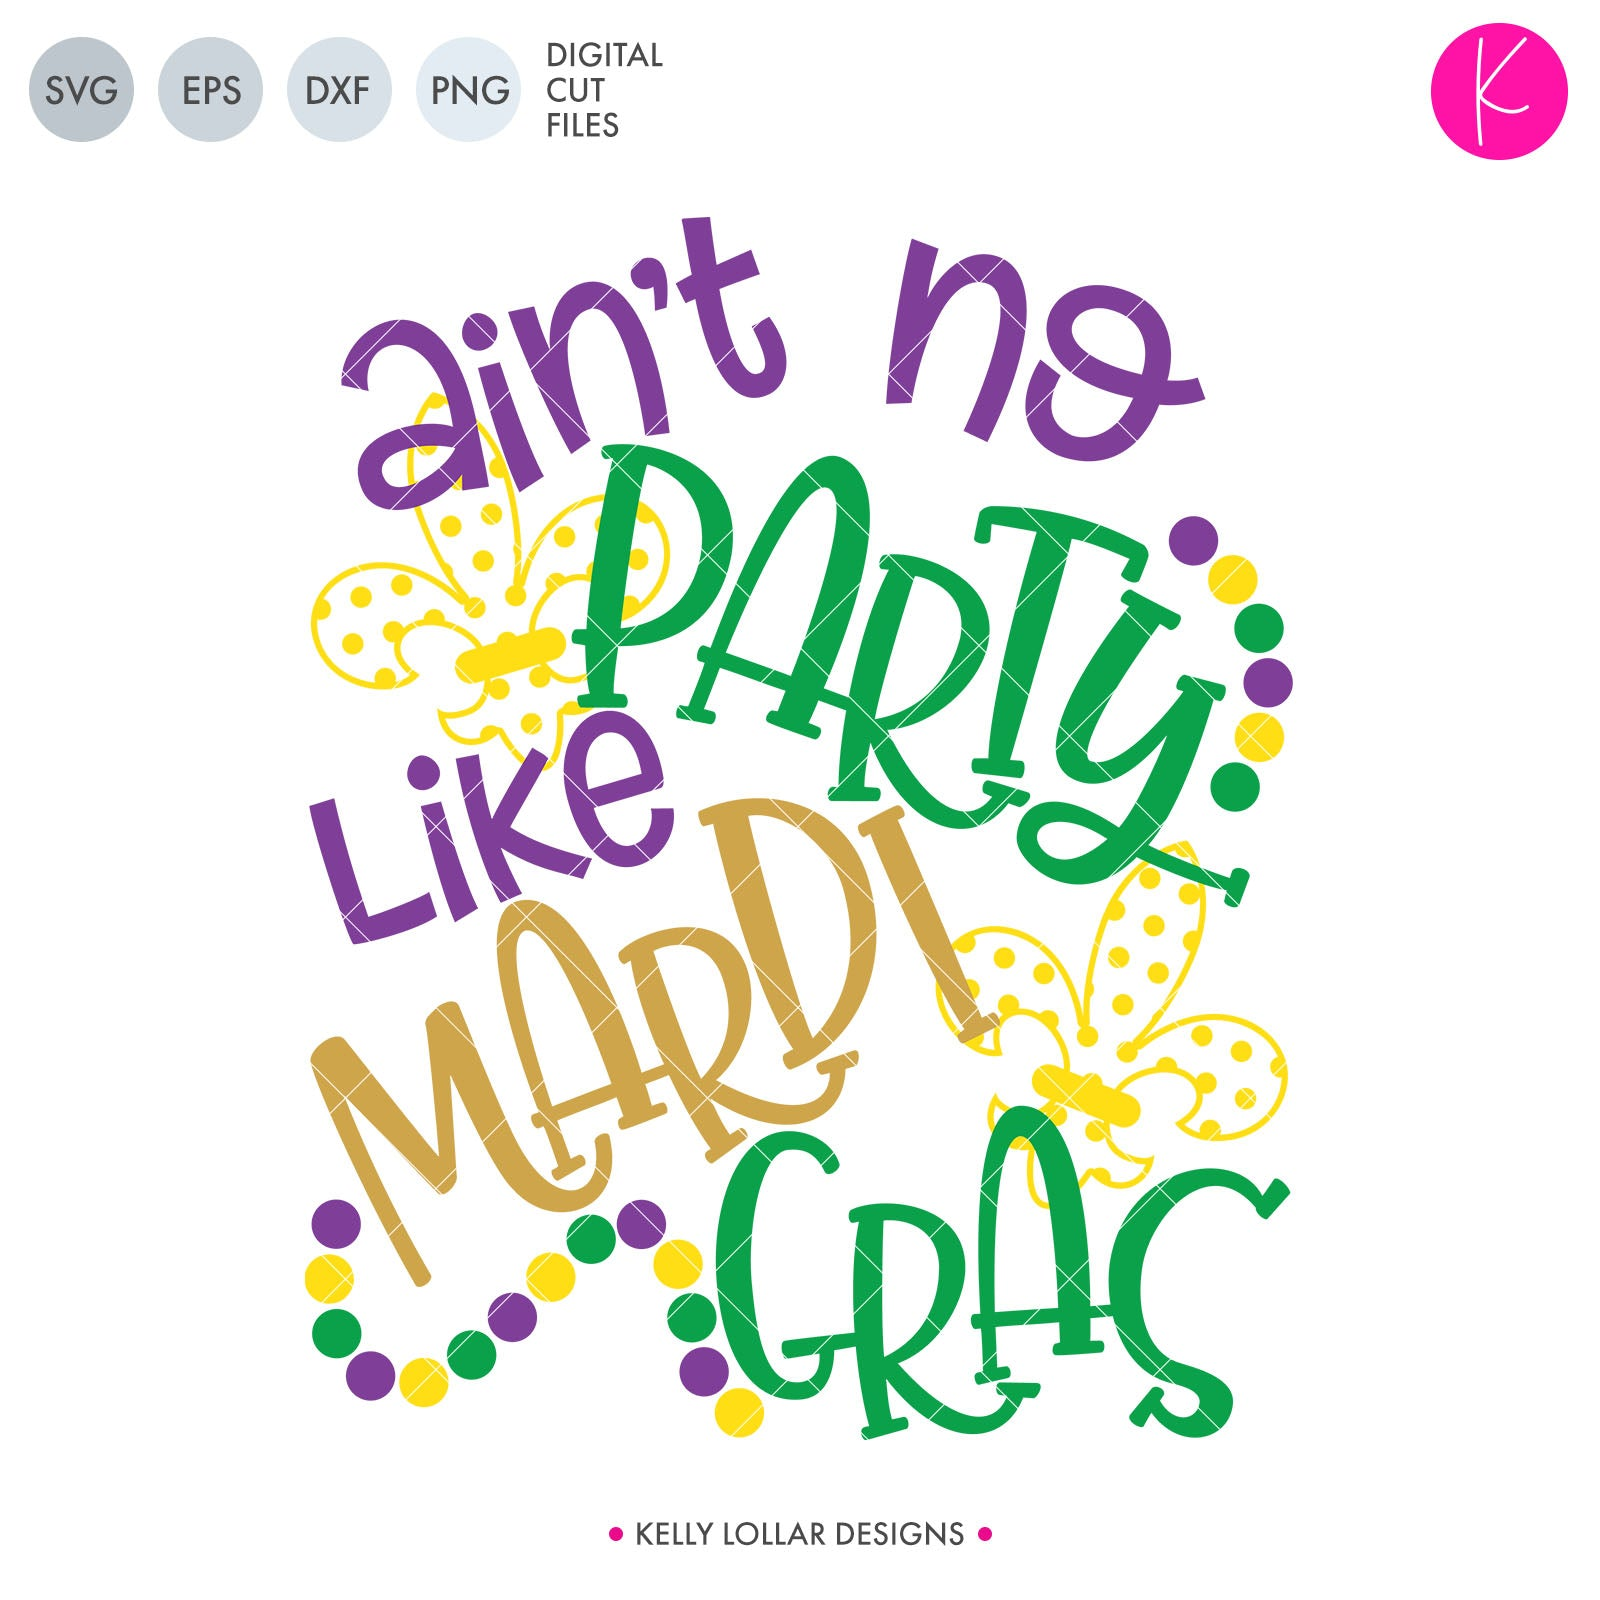 Ain't No Party Like Mardi Gras | SVG DXF EPS PNG Cut Files Quote with Polka Dot Fleur de Lis and Beads for Mardi Gras Shirts and Home Decor | SVG DXF PNG Cut Files 2 files for each format layered version non-layered